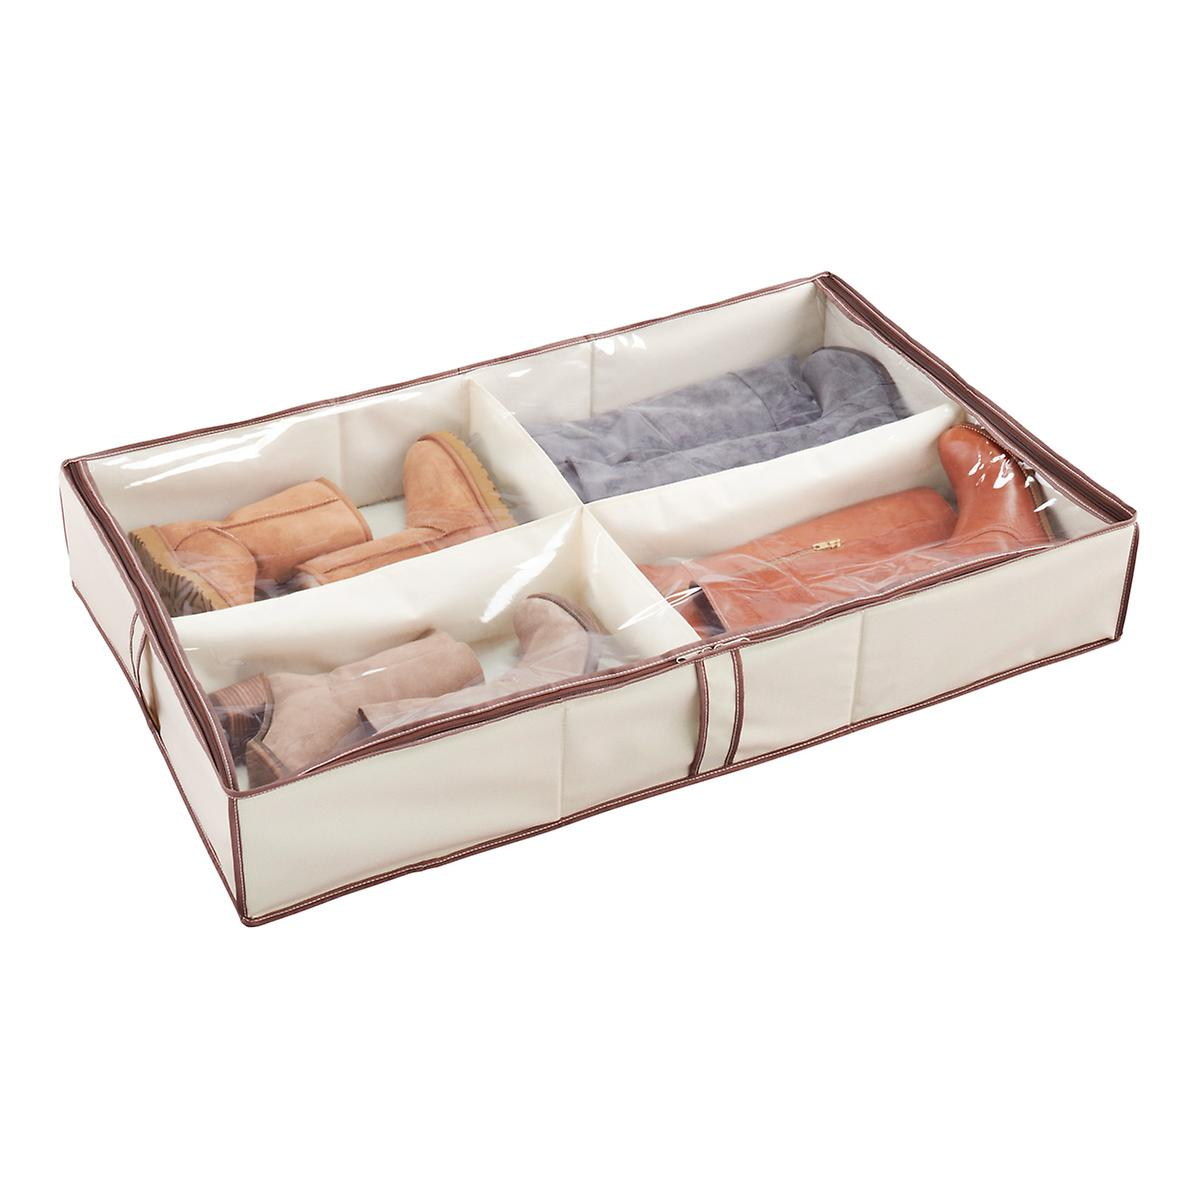 4-Compartment Underbed Shoe Organizer